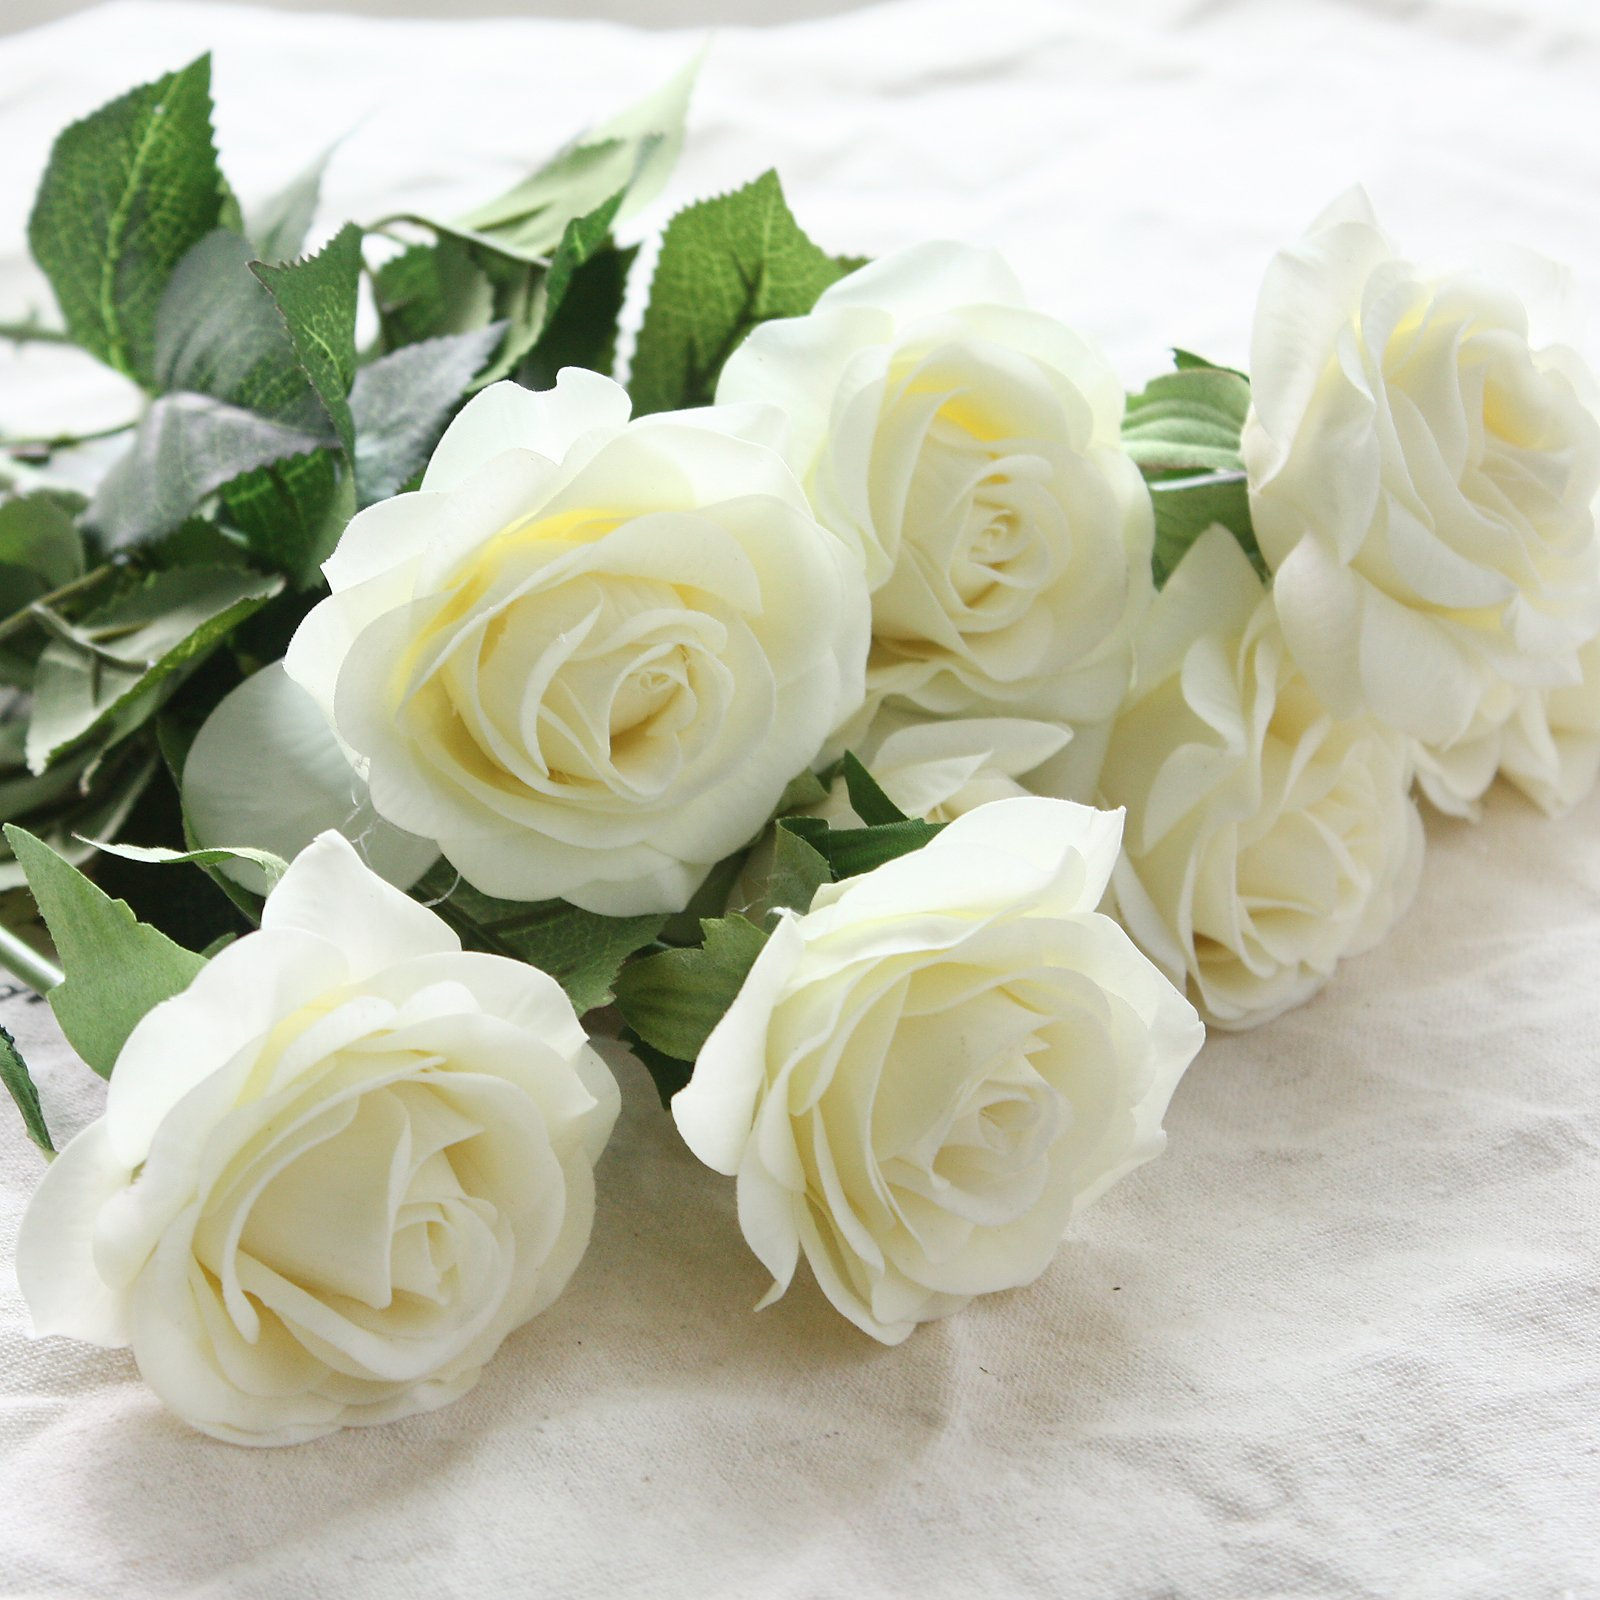 Buy wholesale artificial silk latex rose flowers wedding bouquet buy wholesale artificial silk latex rose flowers wedding bouquet bridal decoration bundles real touch flower bouquets realistic flower bouquet the light izmirmasajfo